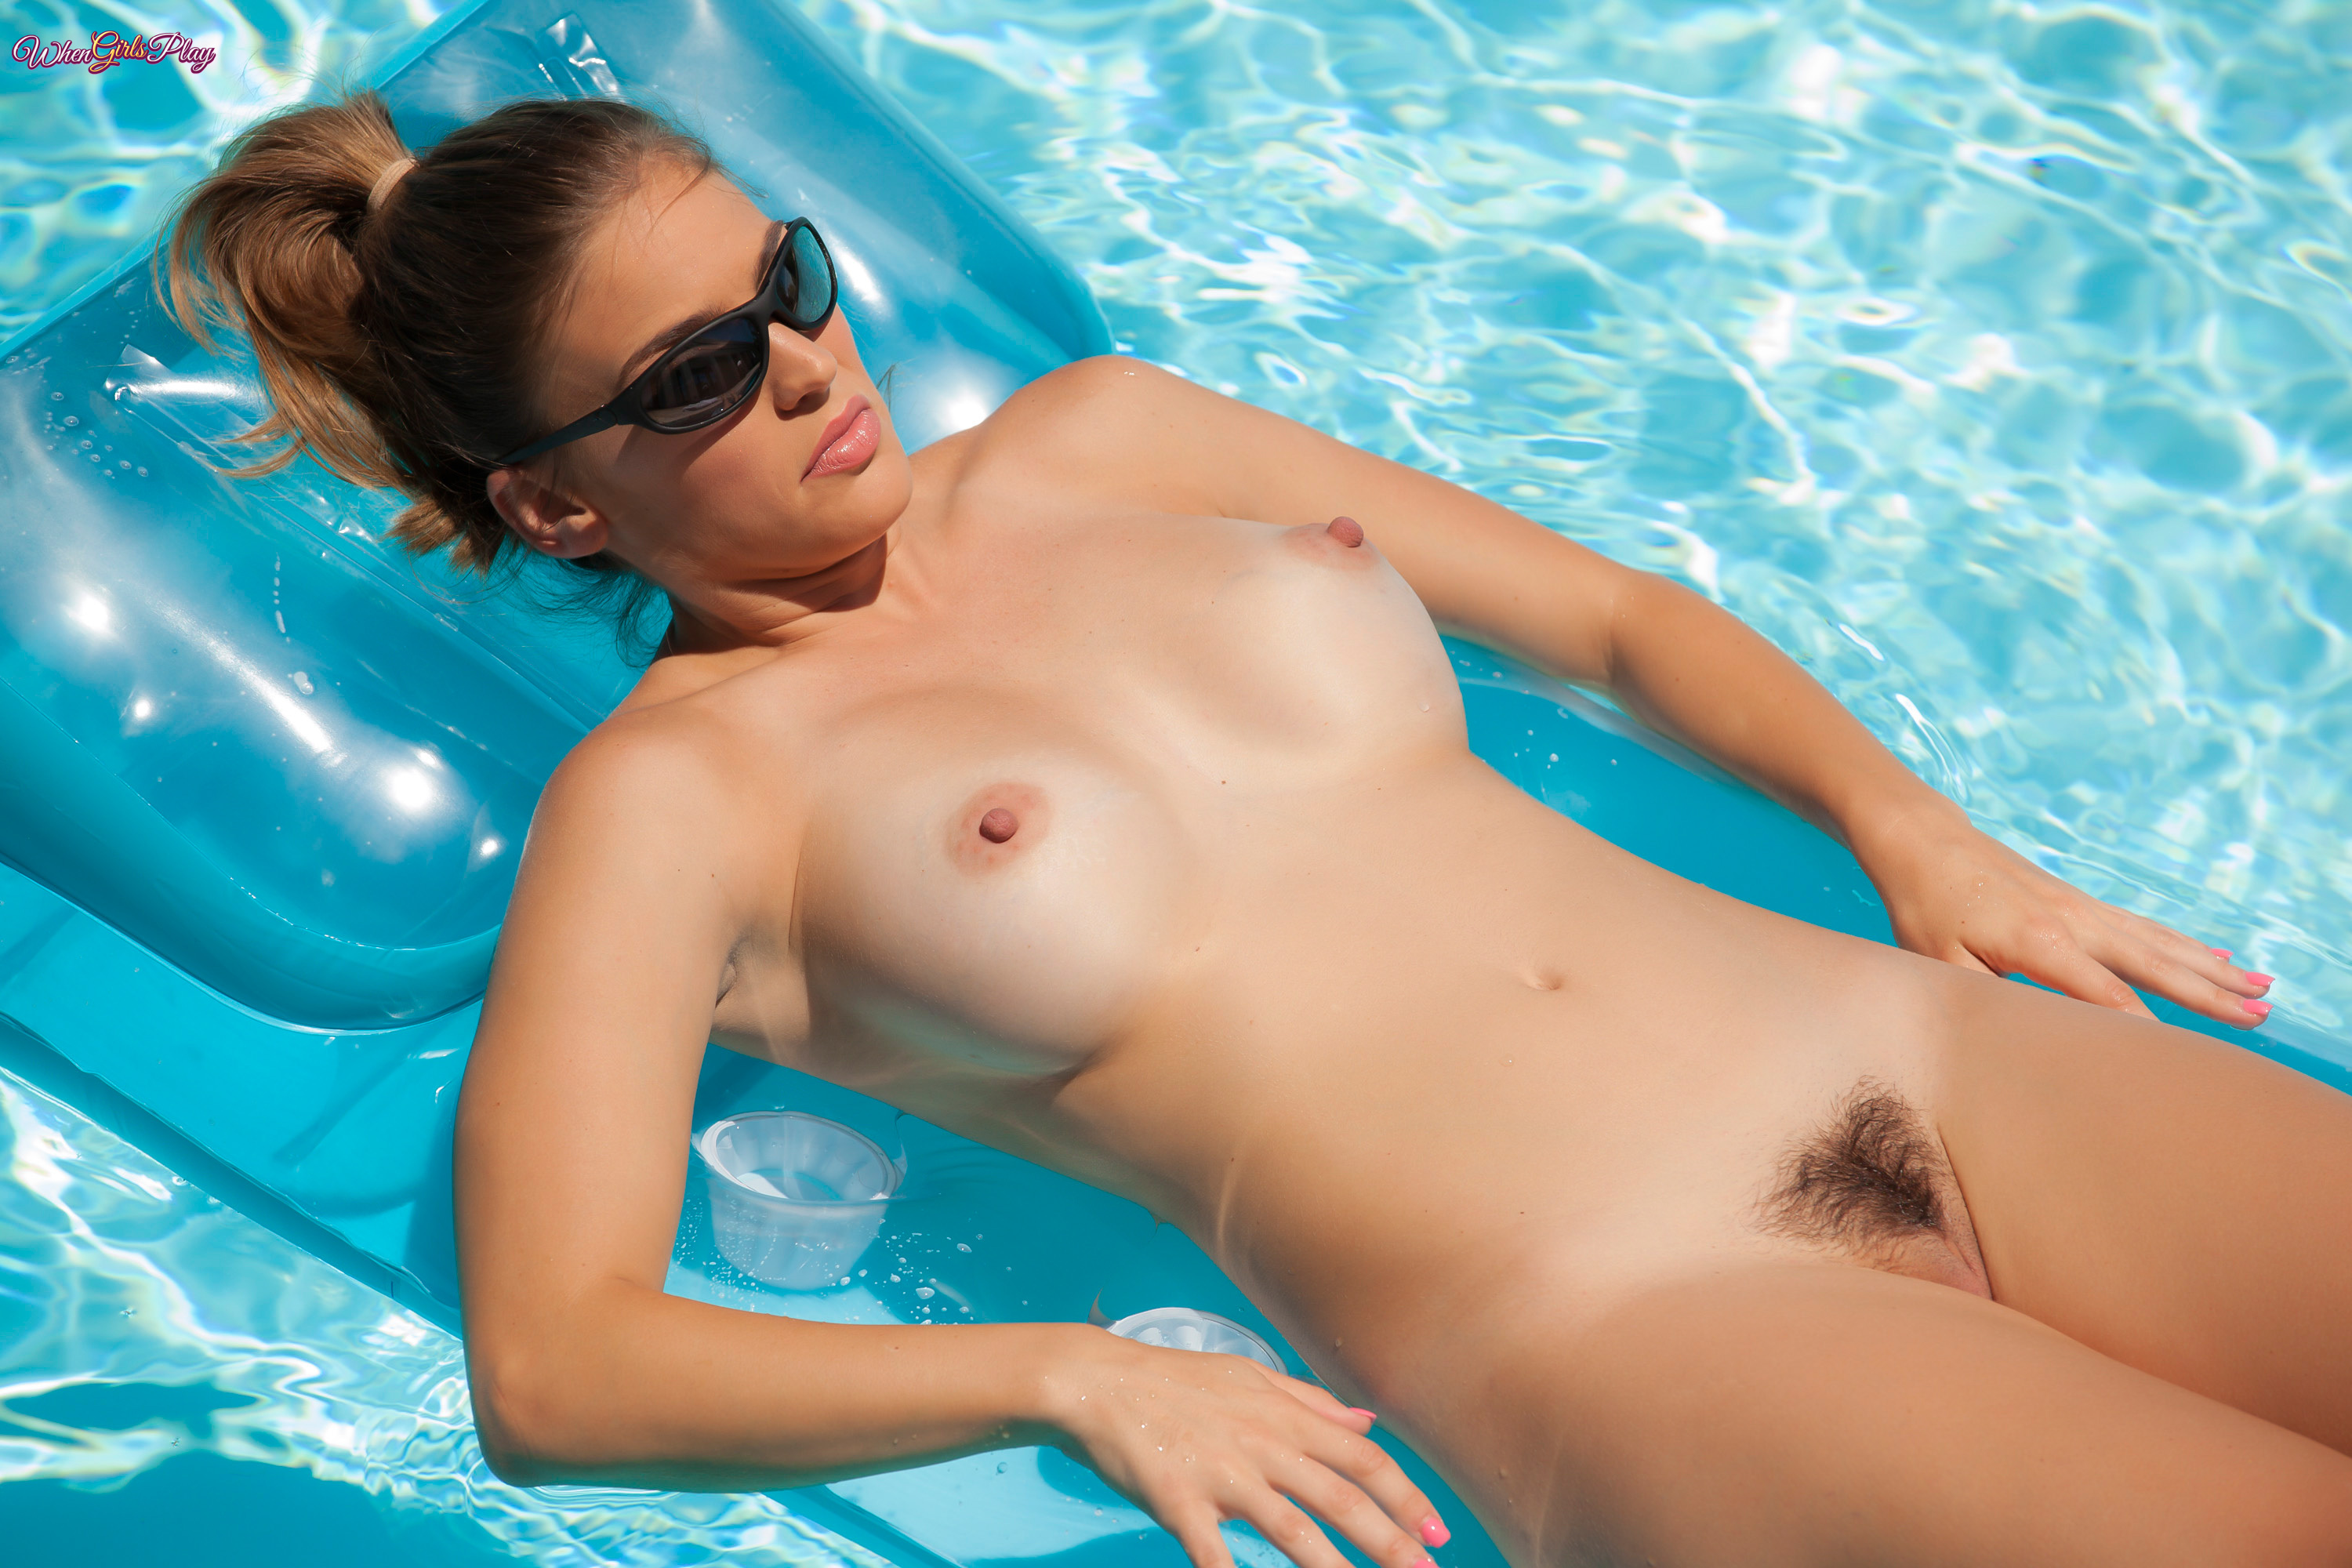 Naked girls are having some fun by the pool in